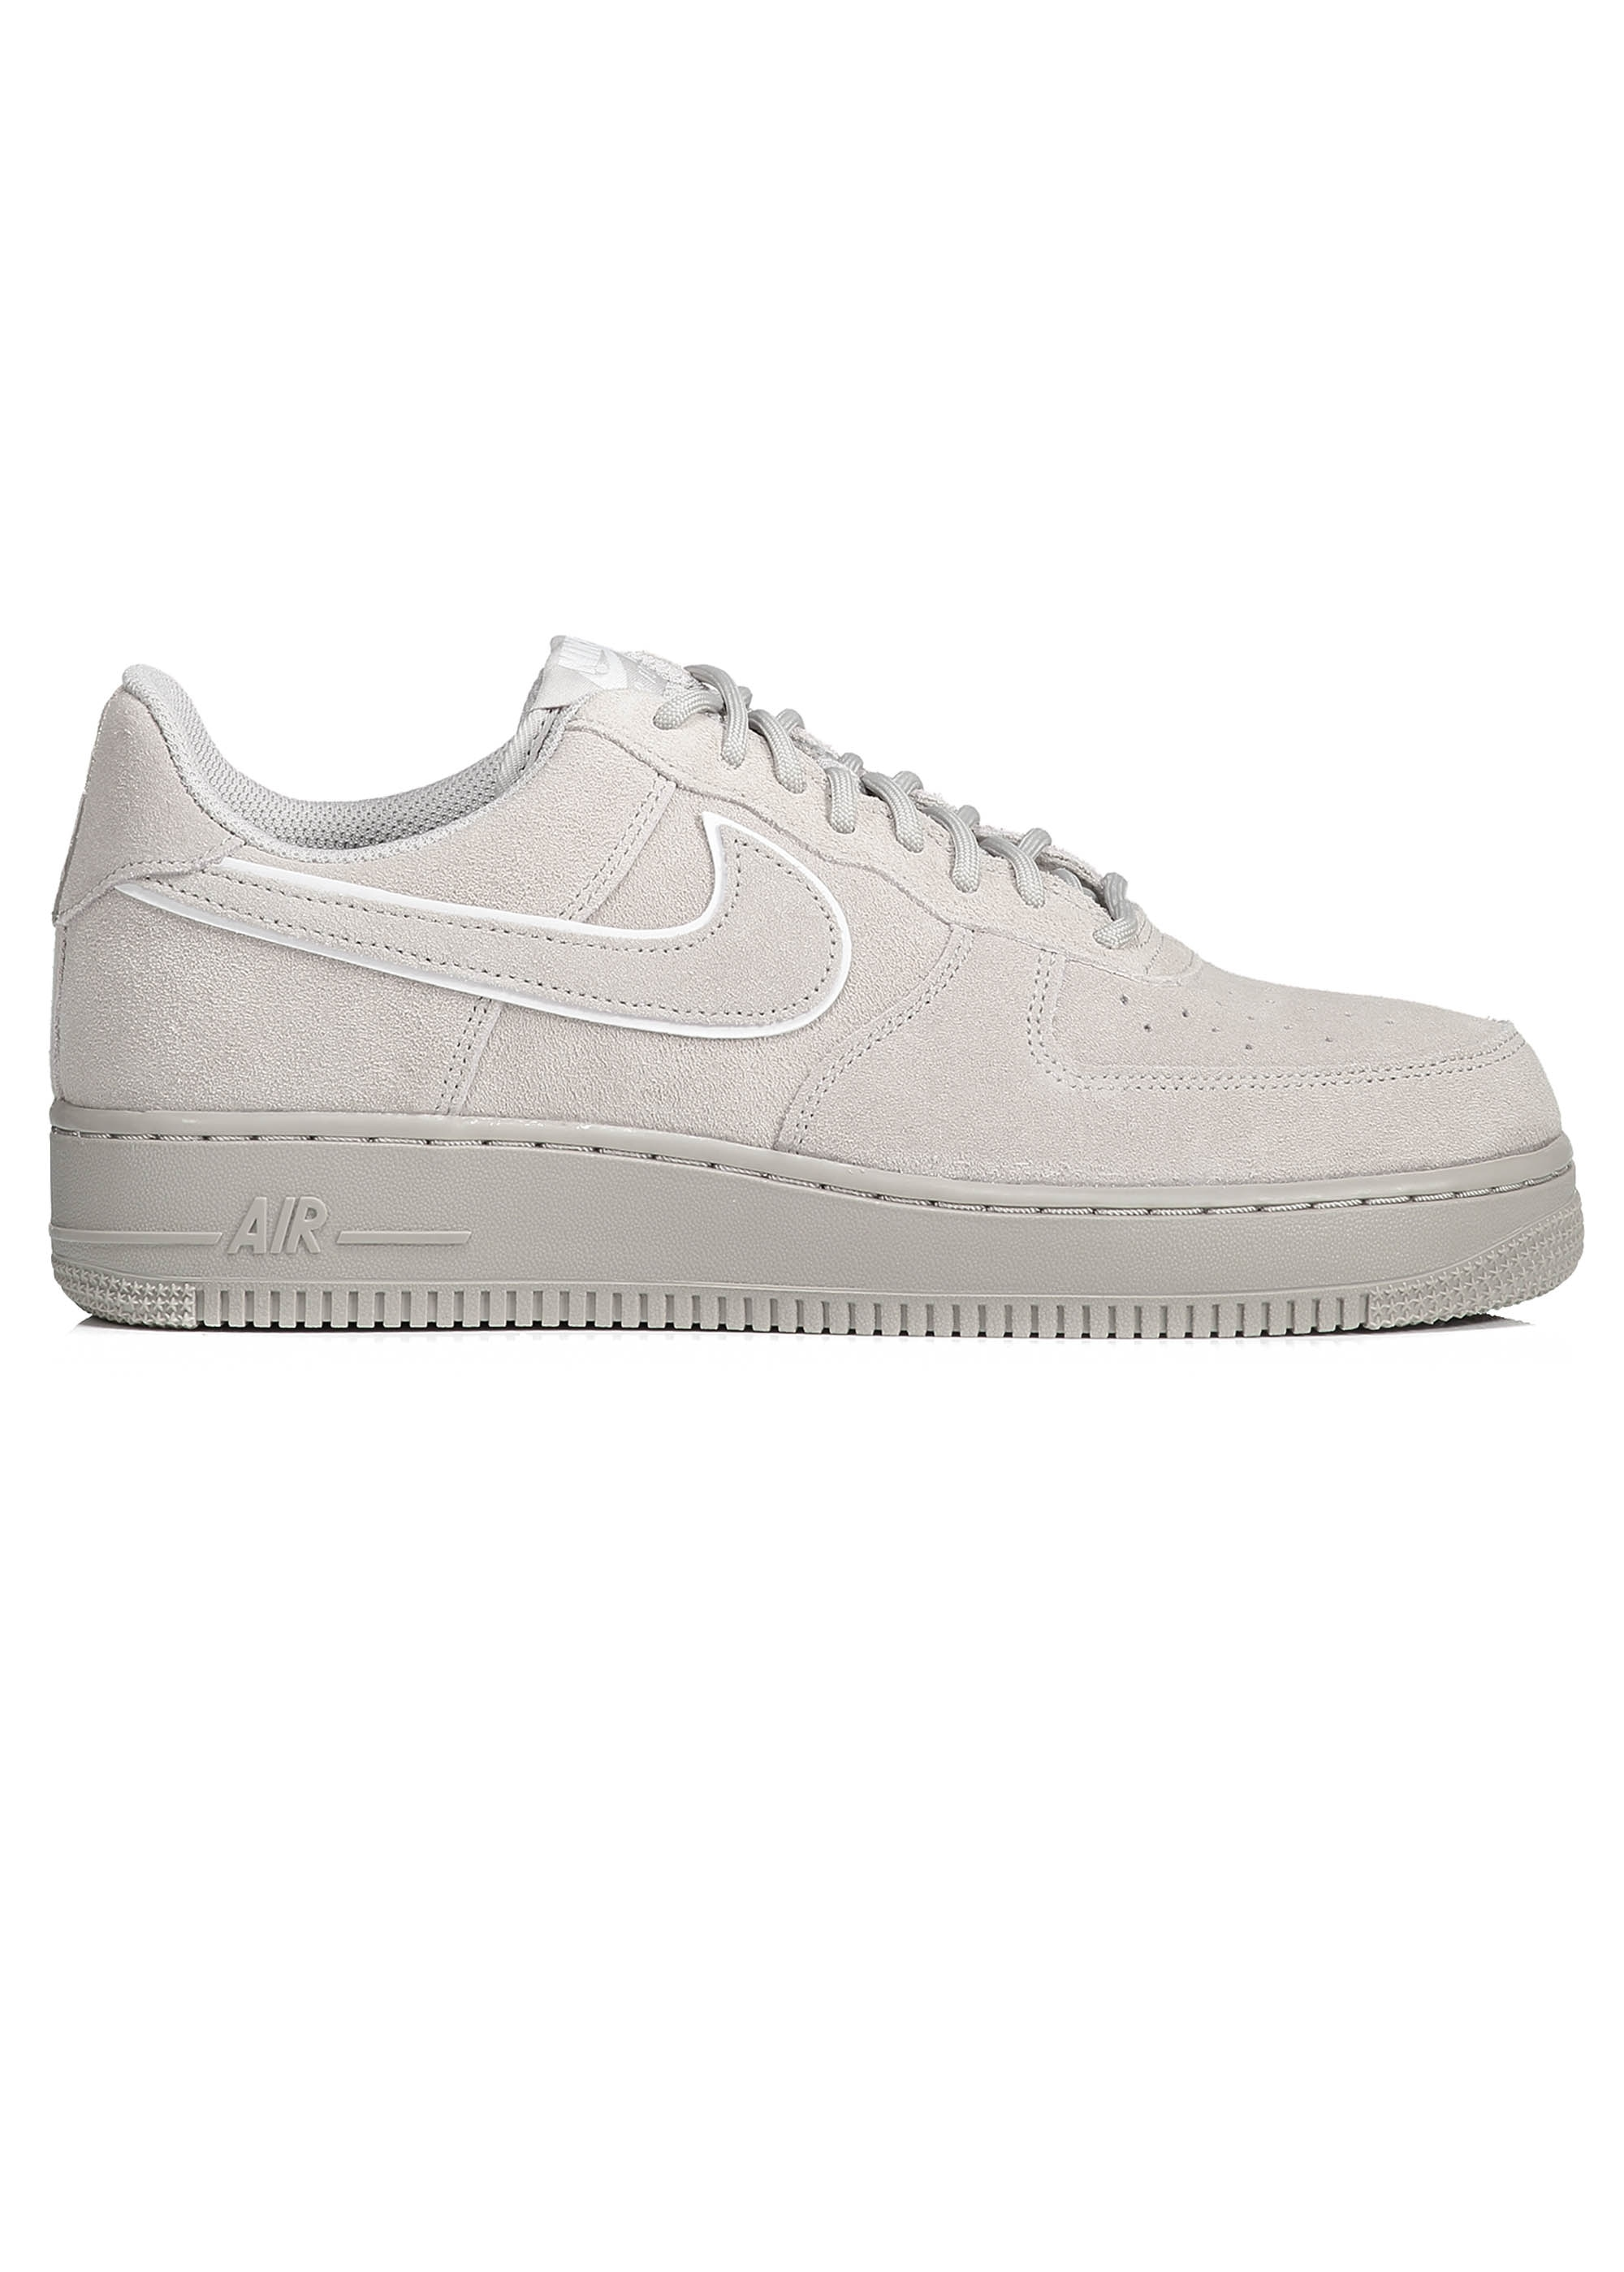 finest selection quality products promo codes Nike Footwear Air Force 1 07 LV8 Suede - Moon Particle